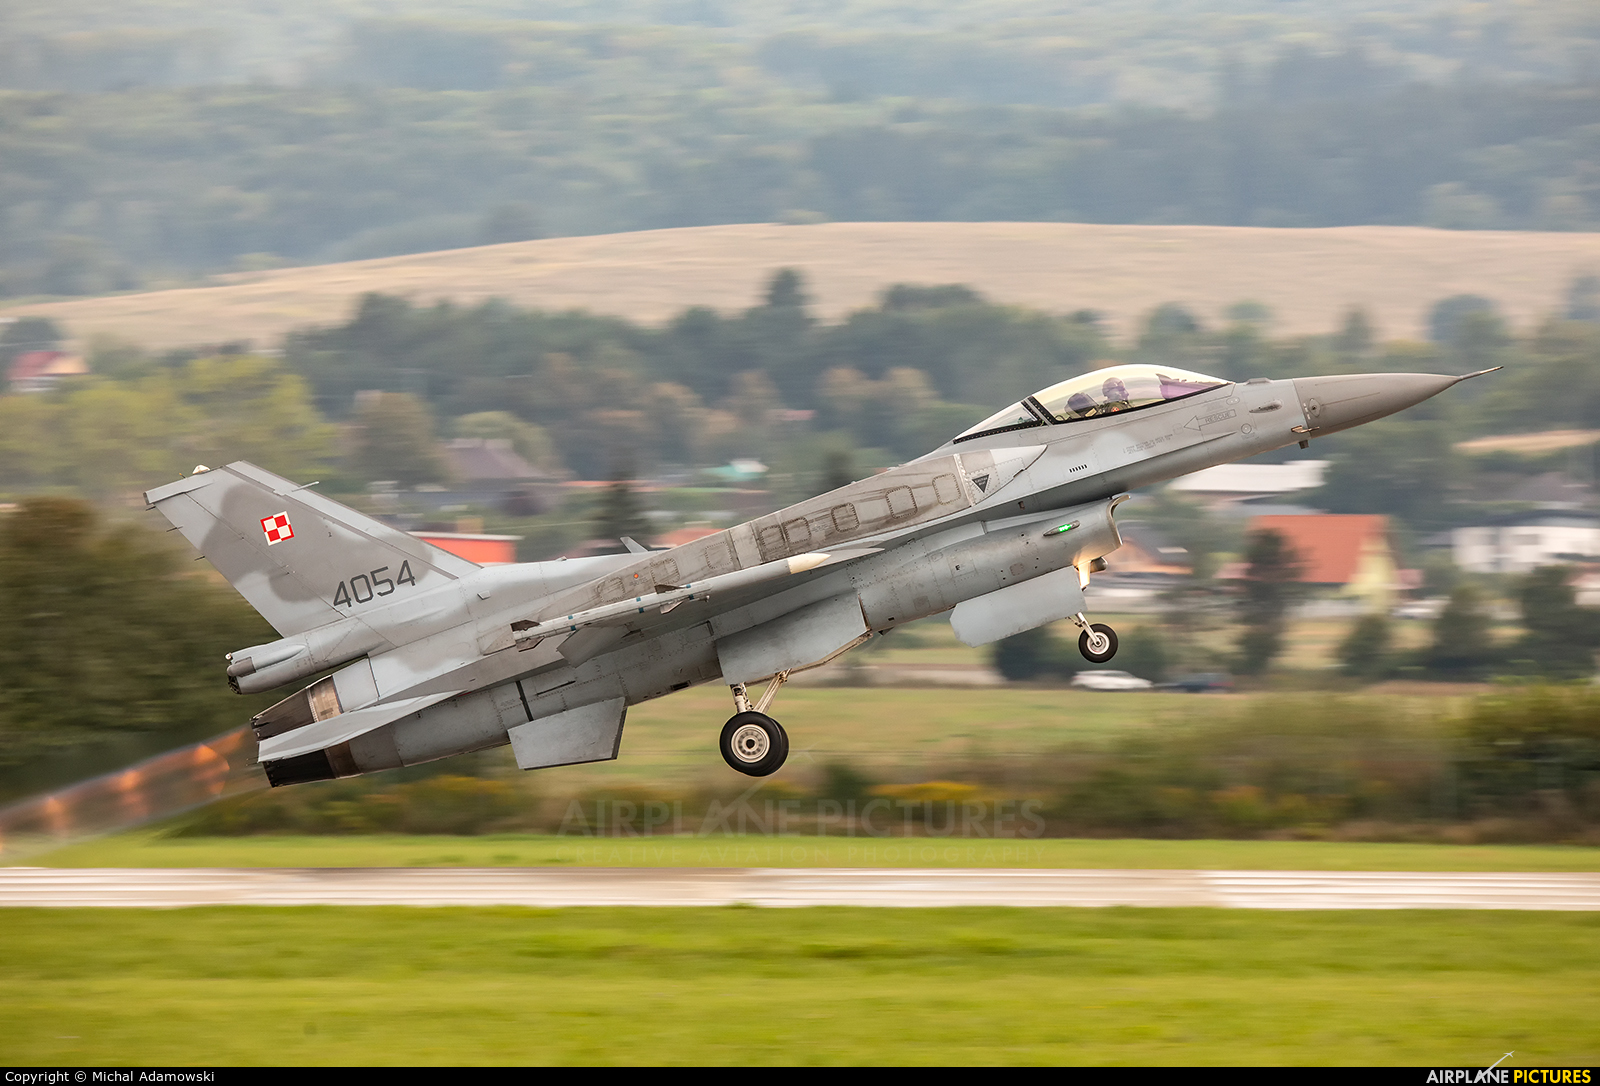 Poland - Air Force 4054 aircraft at Sliač